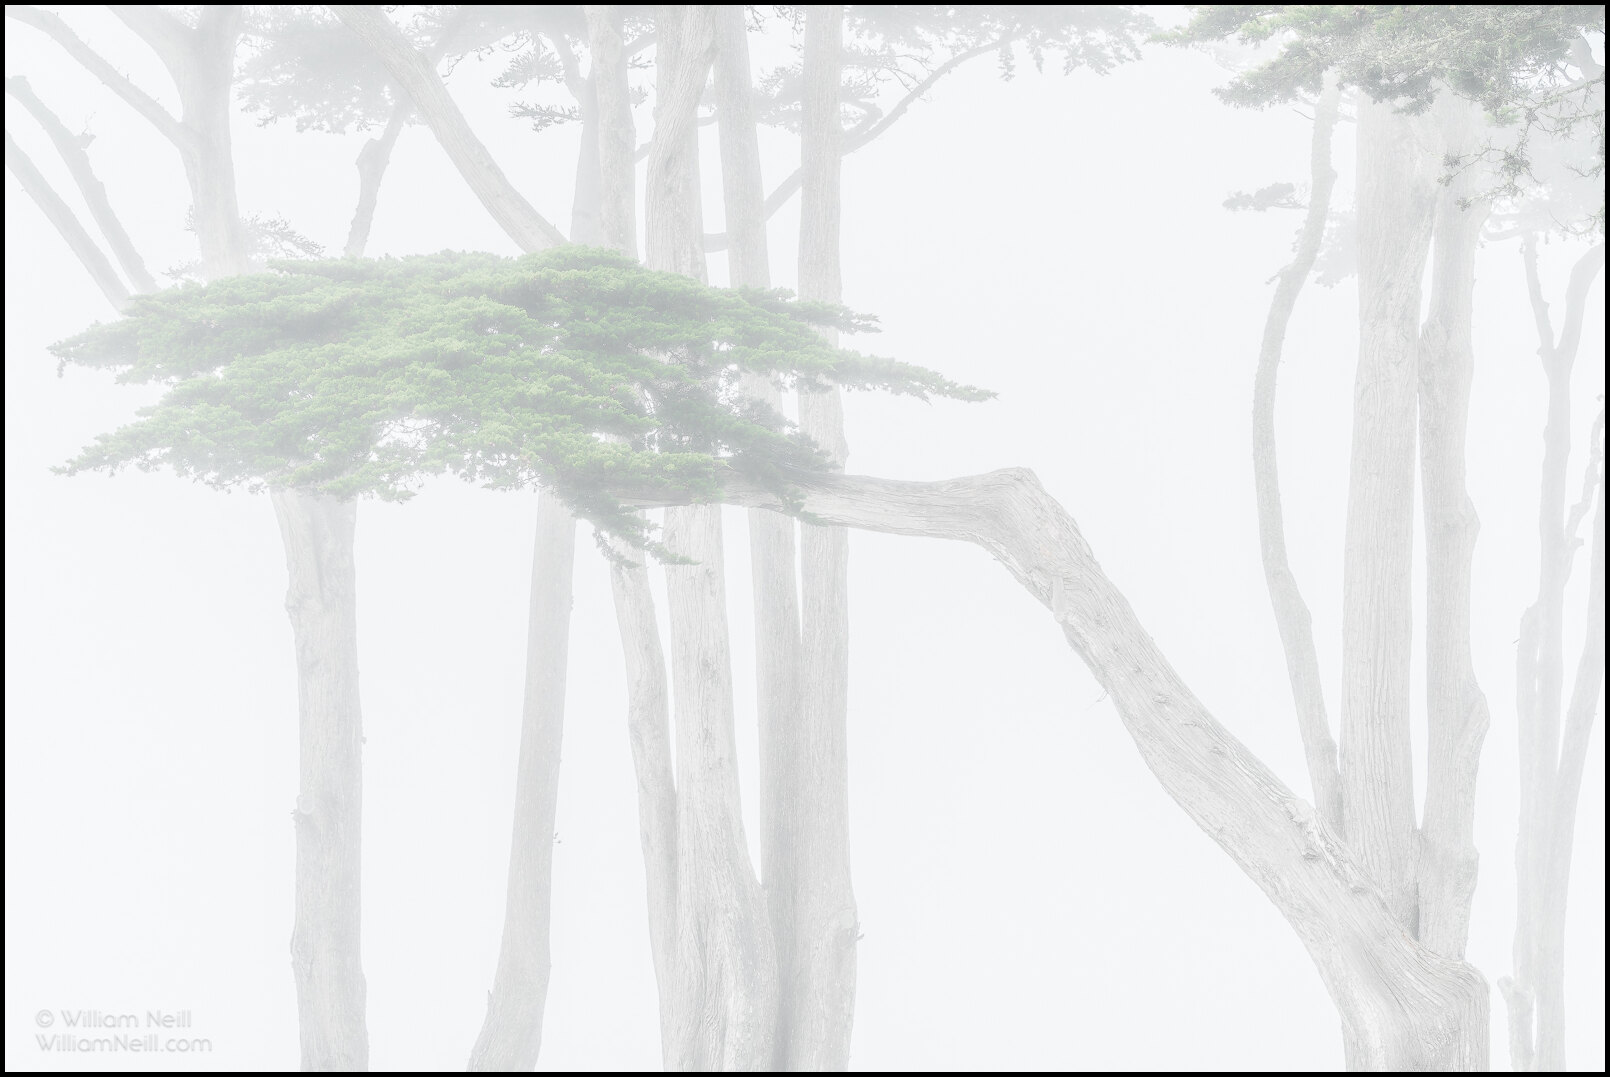 Cypress trees in fog, Monterey, California 2019